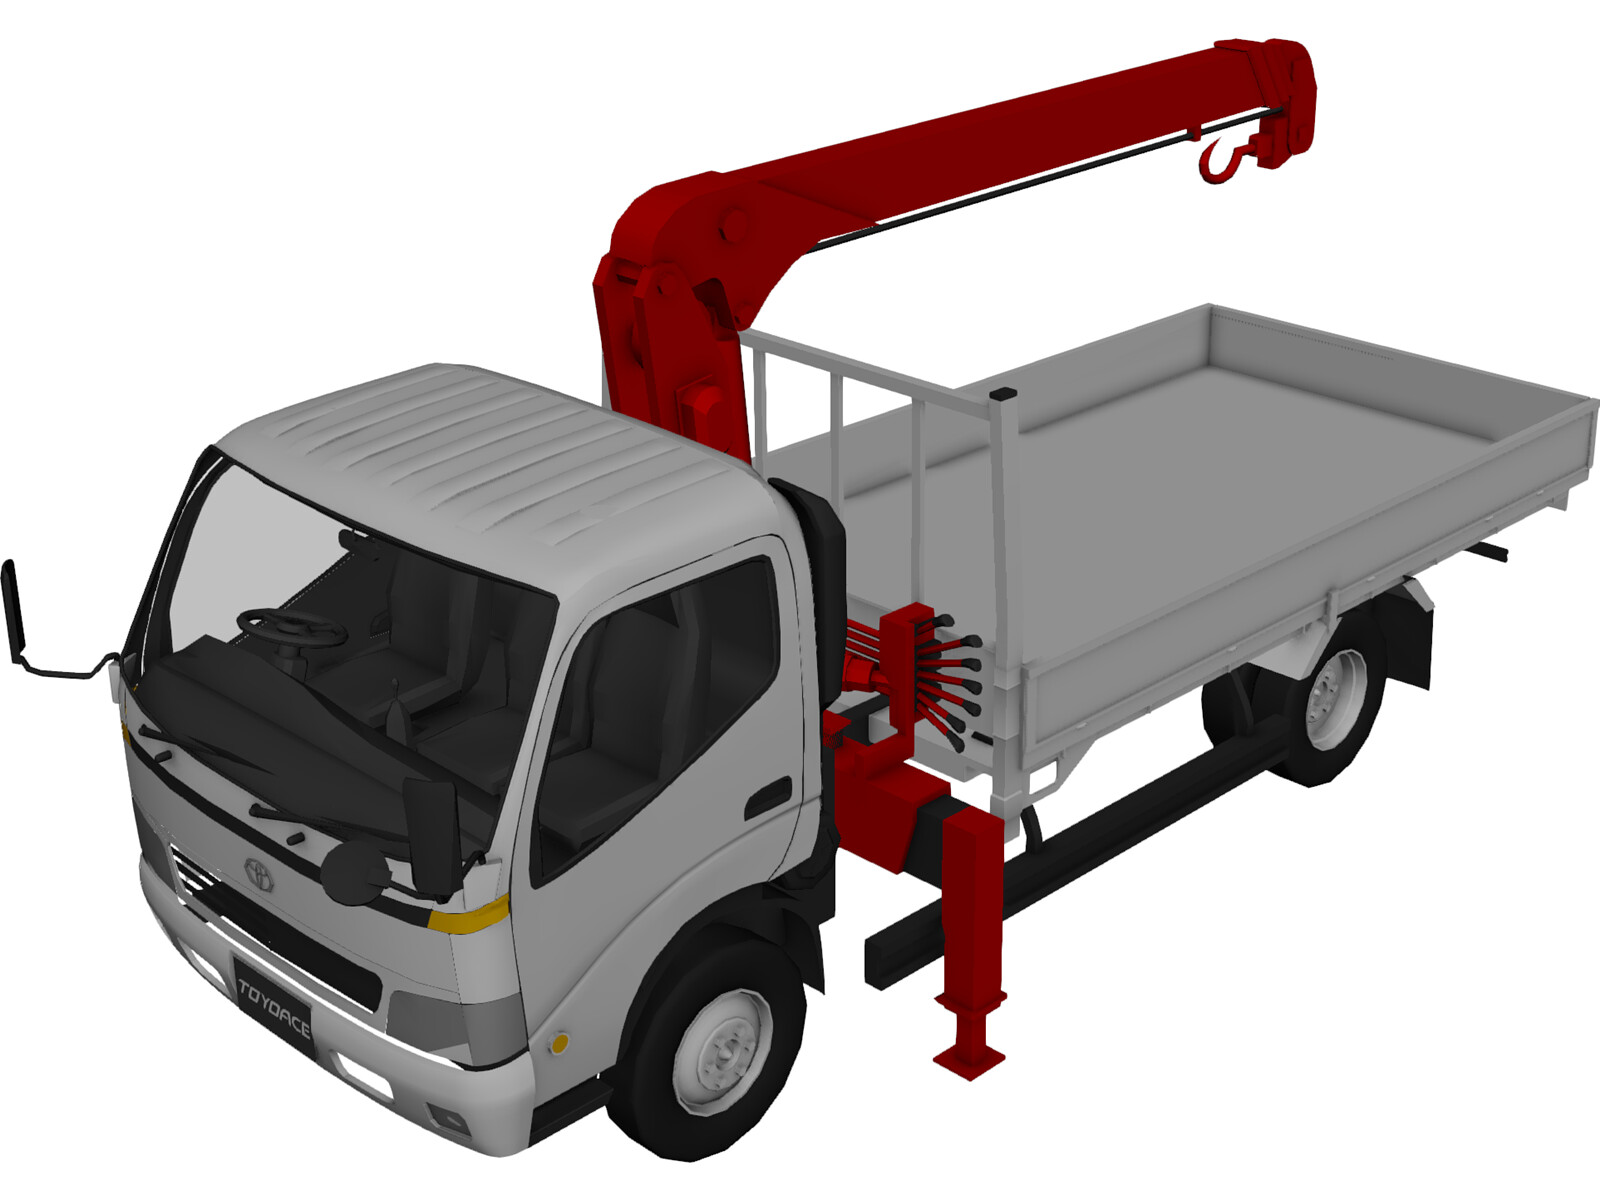 Toyota Toyoace (Tow Crane Truck) (2000)